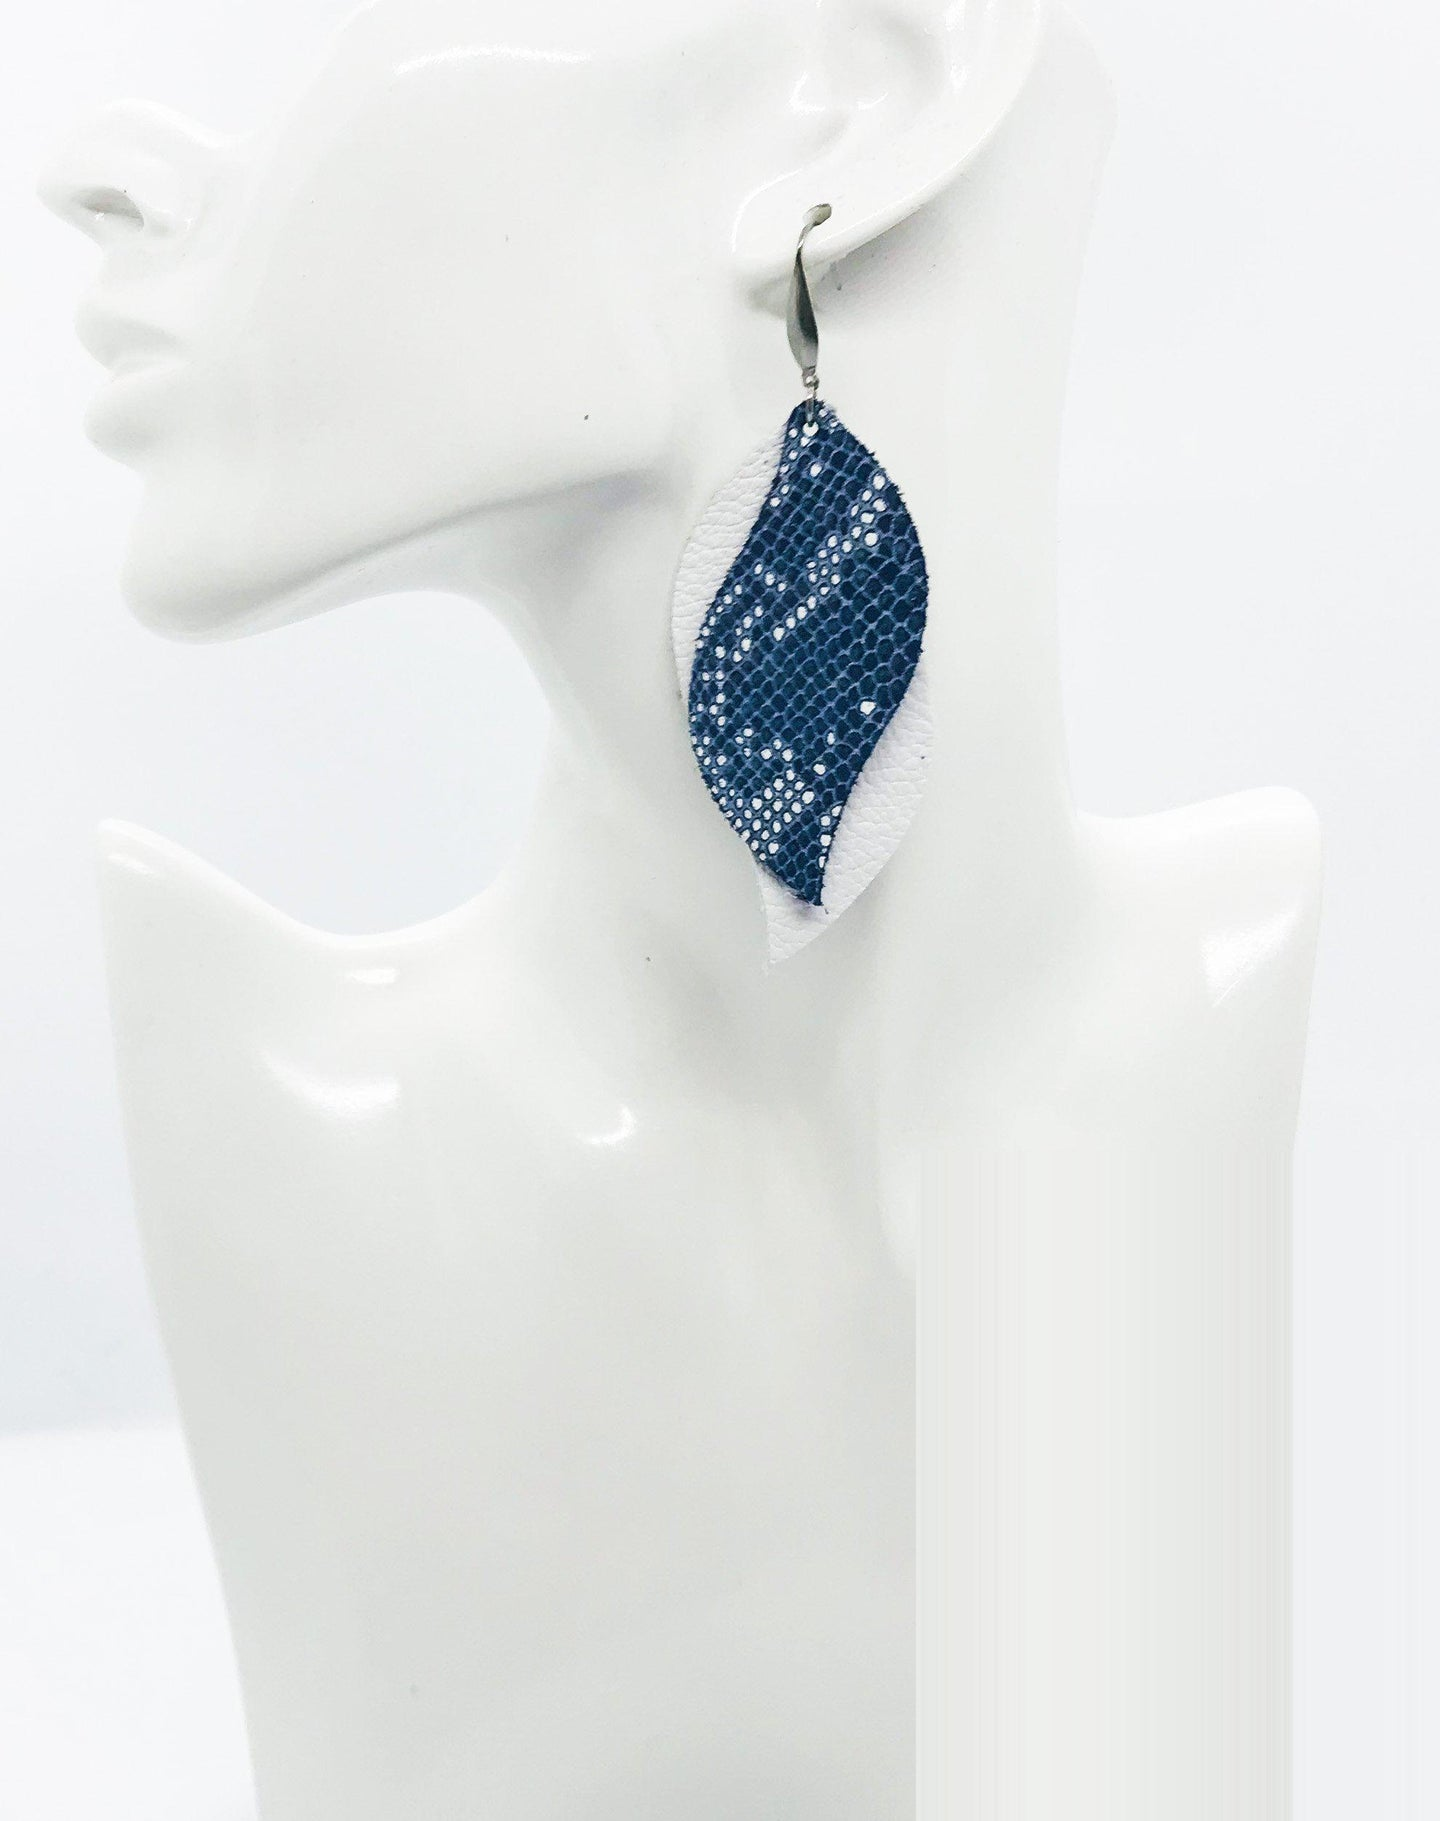 White Leather and Navy Snake Leather Earrings - E19-1356